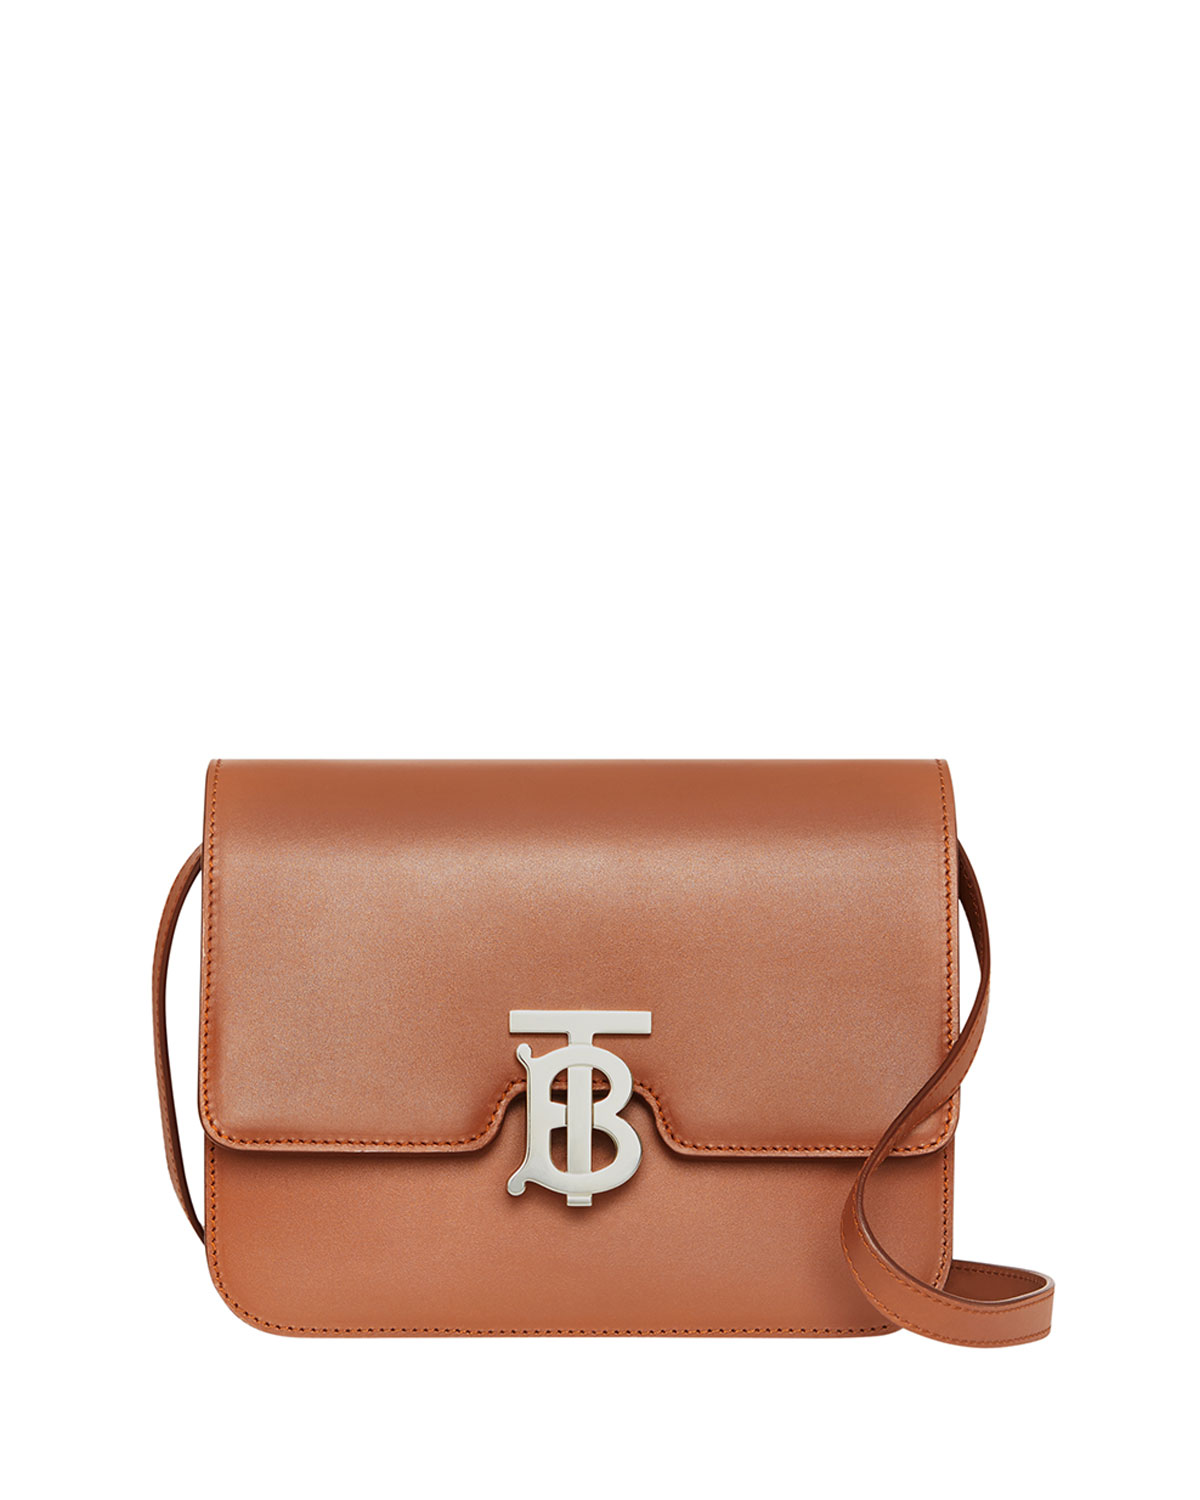 Tb Small Crossbody Bag   Silver Hardware by Burberry